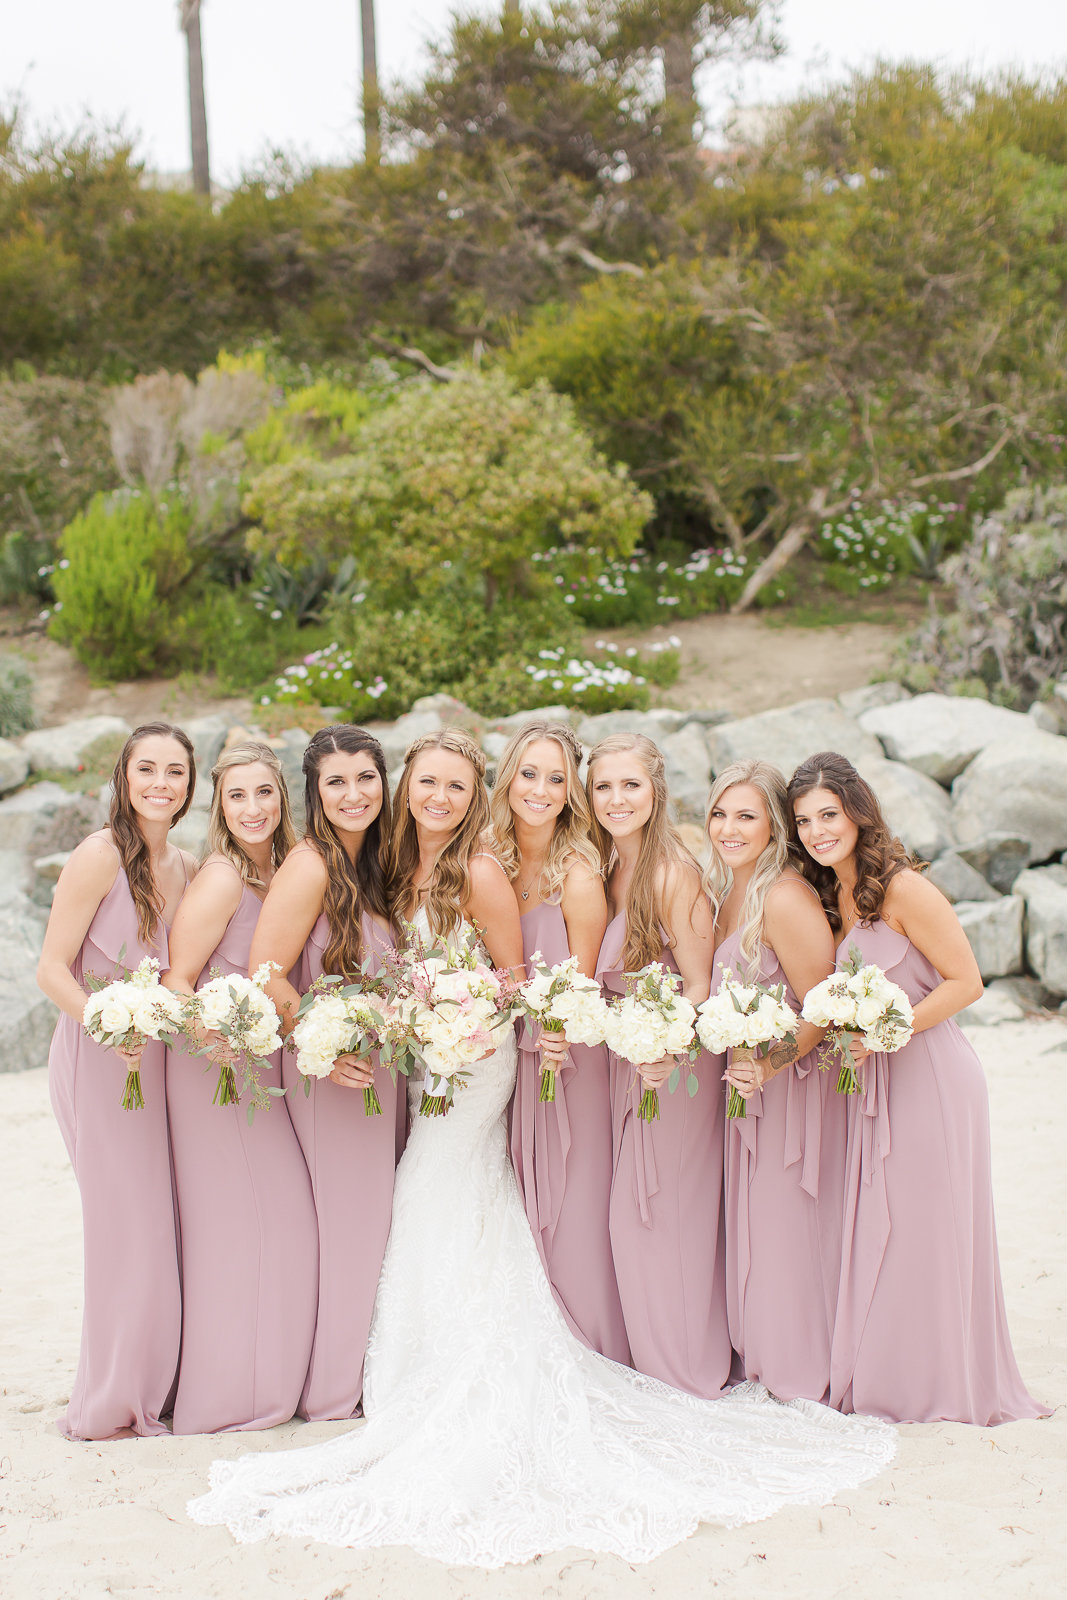 bride and bridesmaids nature outdoor wedding colorado wedding romantic